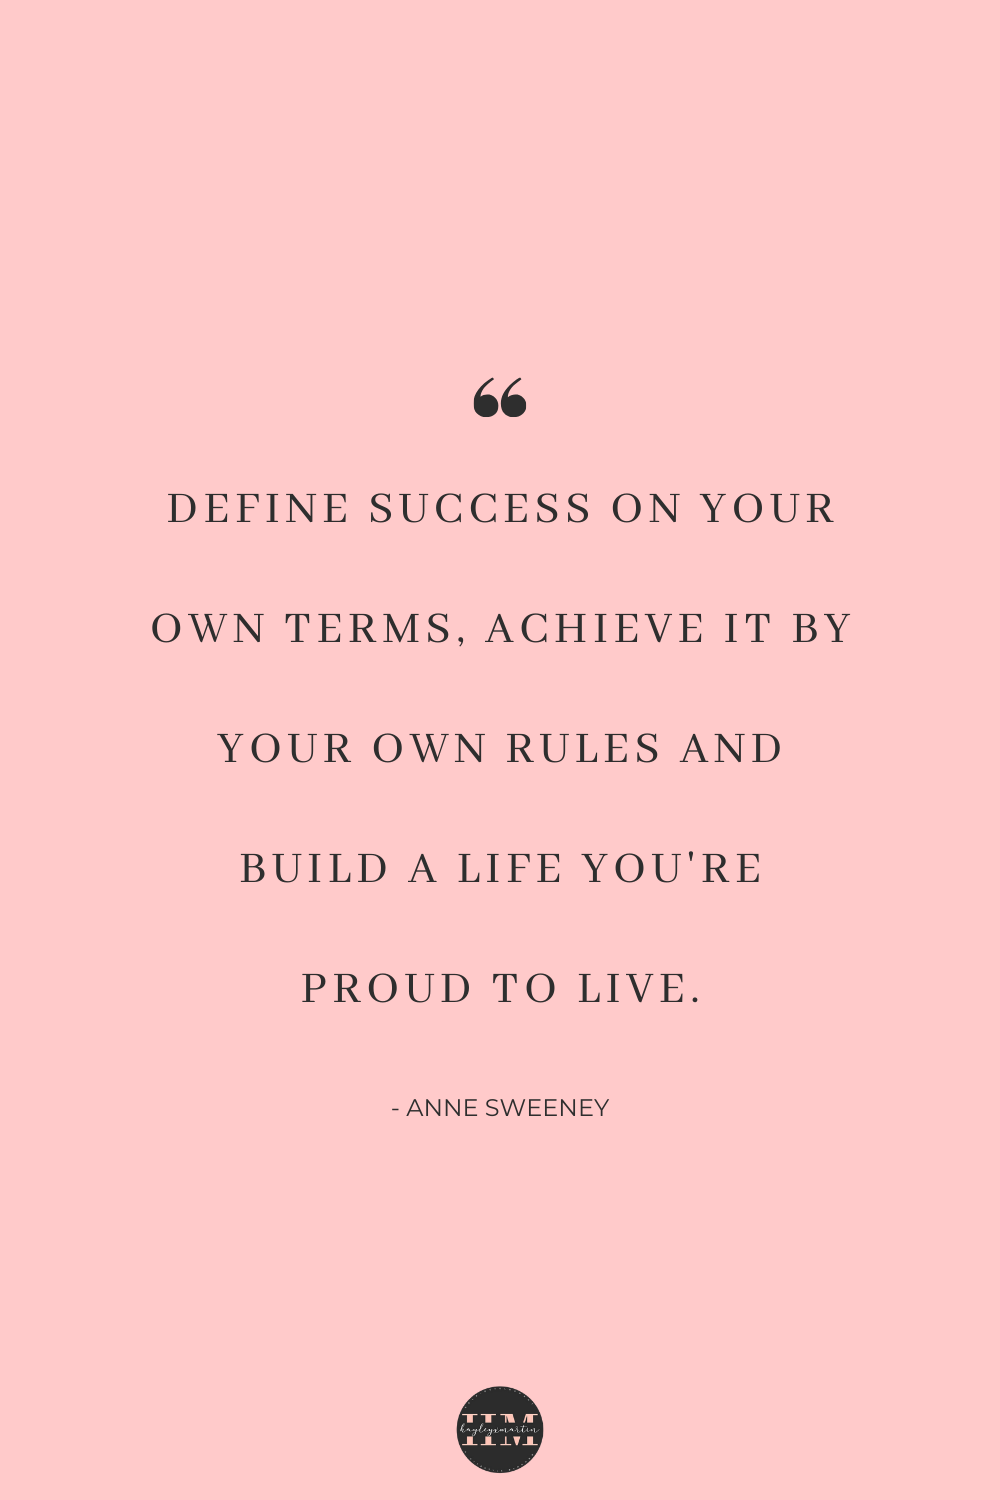 DEFINE SUCCESS ON YOUR OWN TERMS, ACHIEVE IT BY YOUR OWN RULES AND BUILD A LIFE YOU'RE PROUD TO LIVE